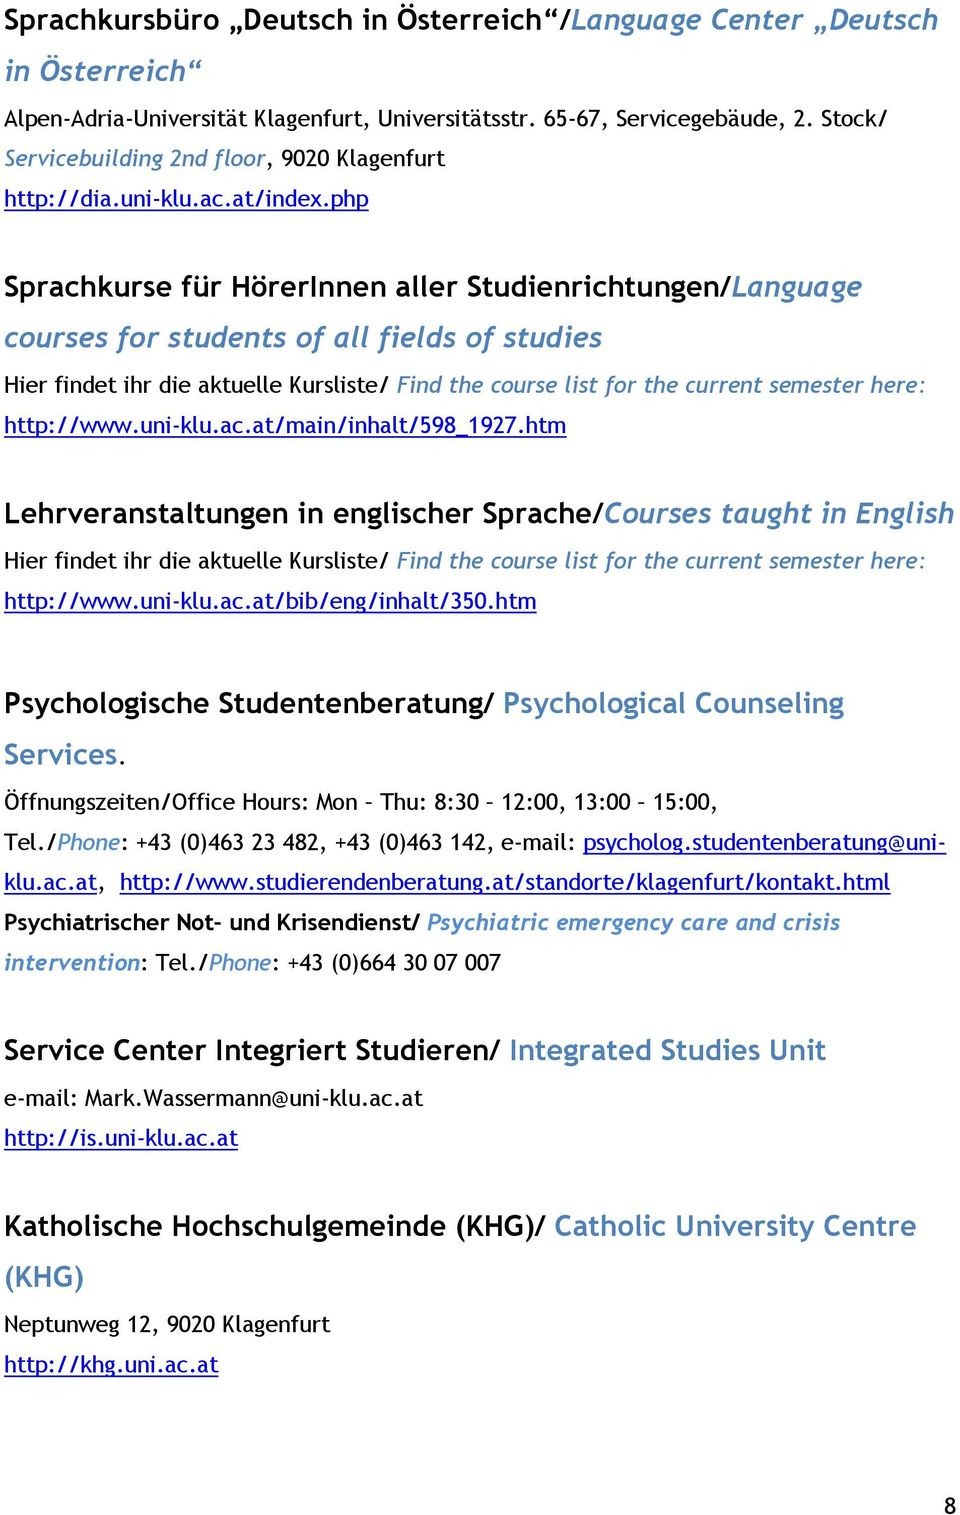 php Sprachkurse für HörerInnen aller Studienrichtungen/Language courses for students of all fields of studies Hier findet ihr die aktuelle Kursliste/ Find the course list for the current semester